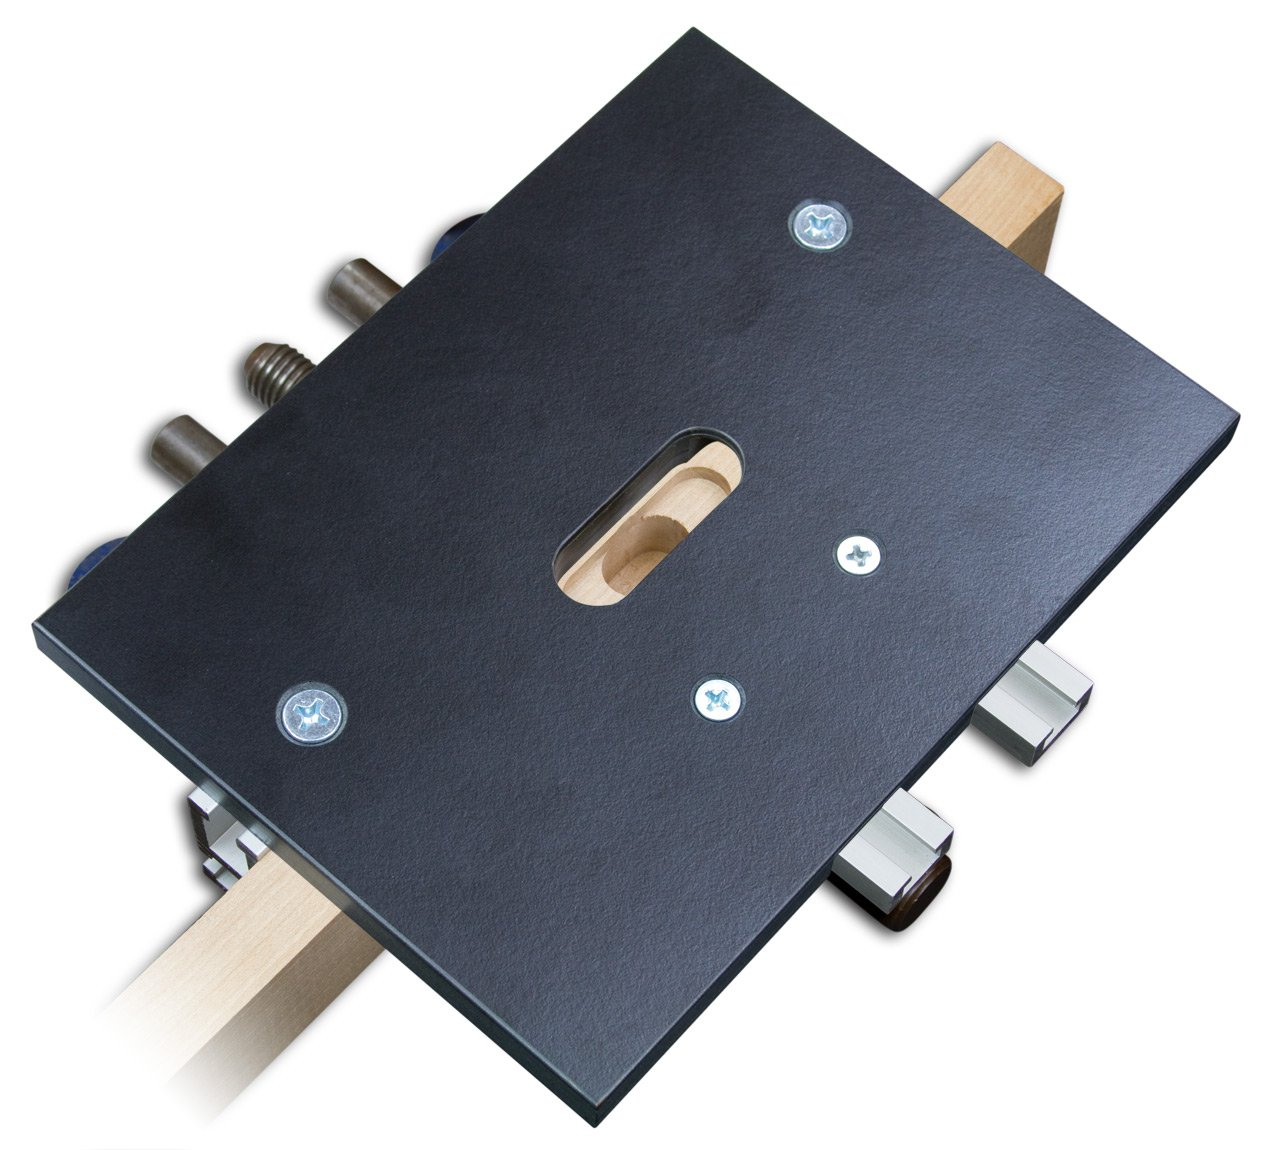 Woodhaven 8663 For Soss 203 Hinge Router Templates Amazon